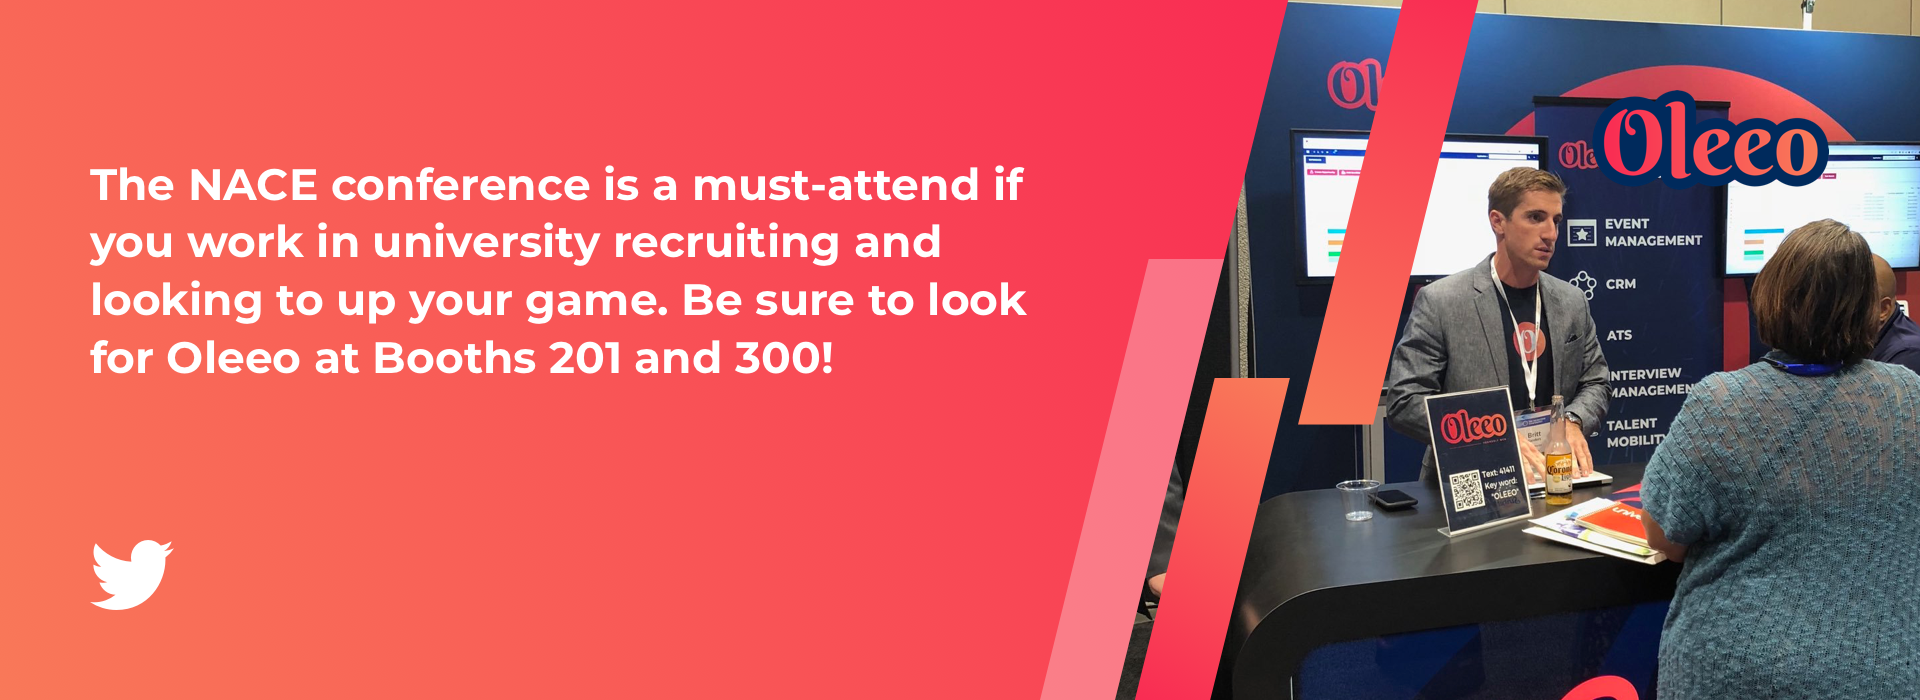 The NACE conference is a must-attend if you work in university recruiting and looking to up your game. Be sure to look for Oleeo at Booths 201 and 300!